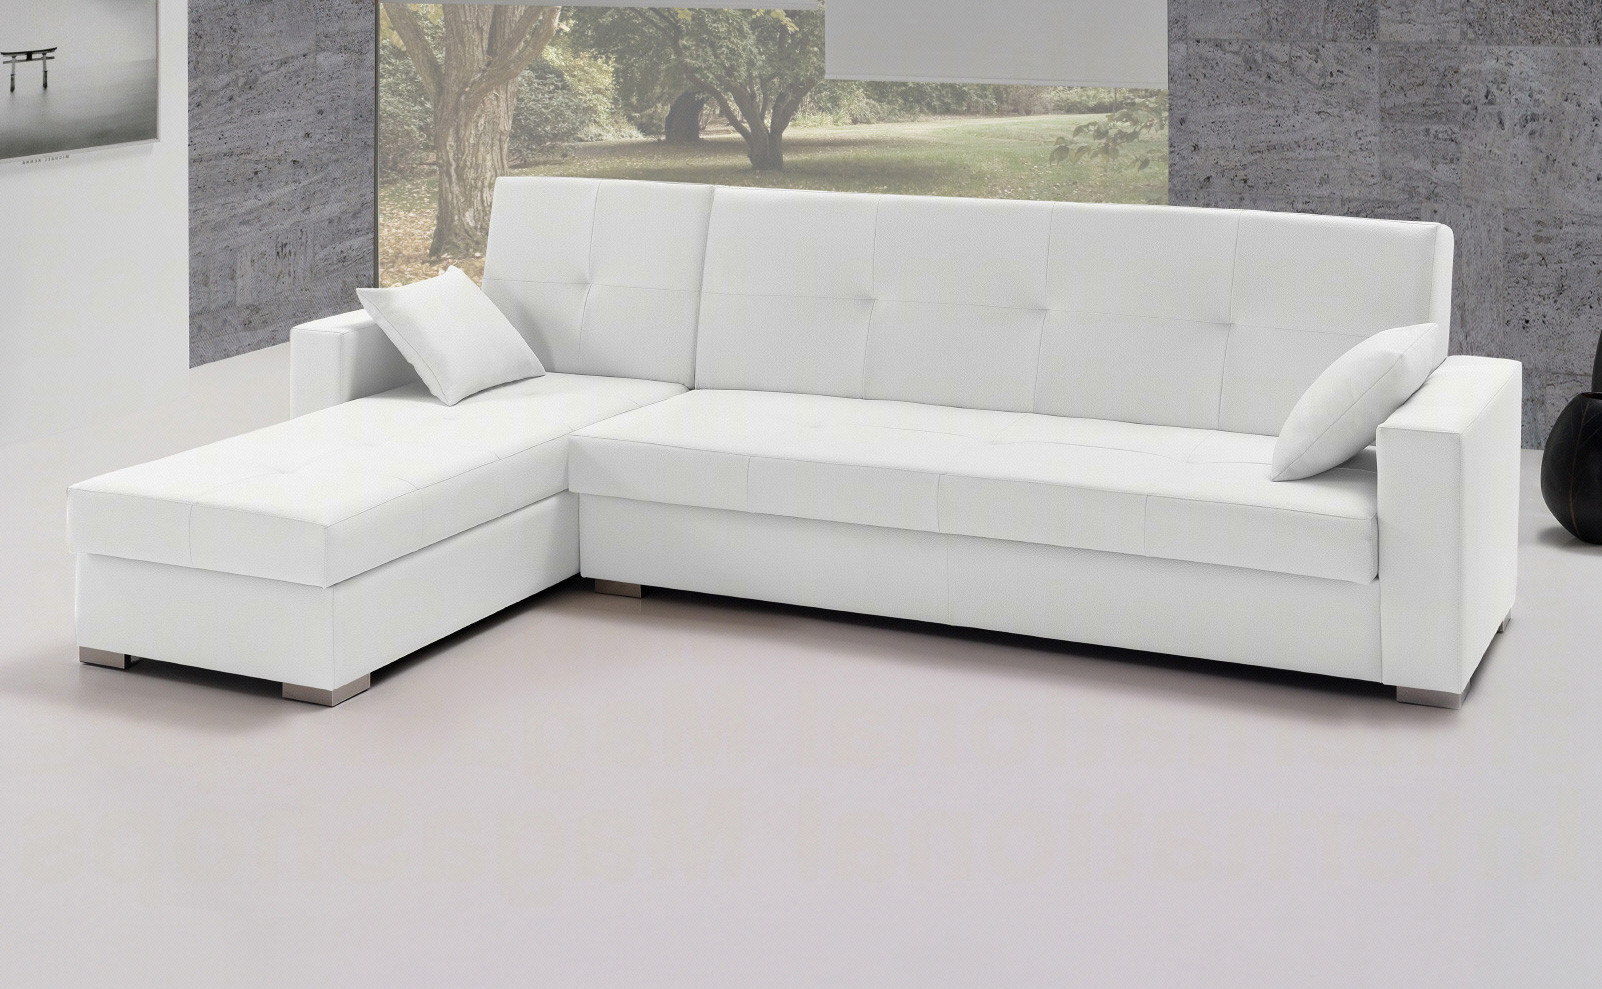 Chaise Longue Cama Baratos Brillante sofas Chaise Longue Baratos sofa the Honoroak Of Chaise Longue Cama Baratos Contemporáneo sofá Cama Mesmerizar sofa Chaise Longue Cama Chaise